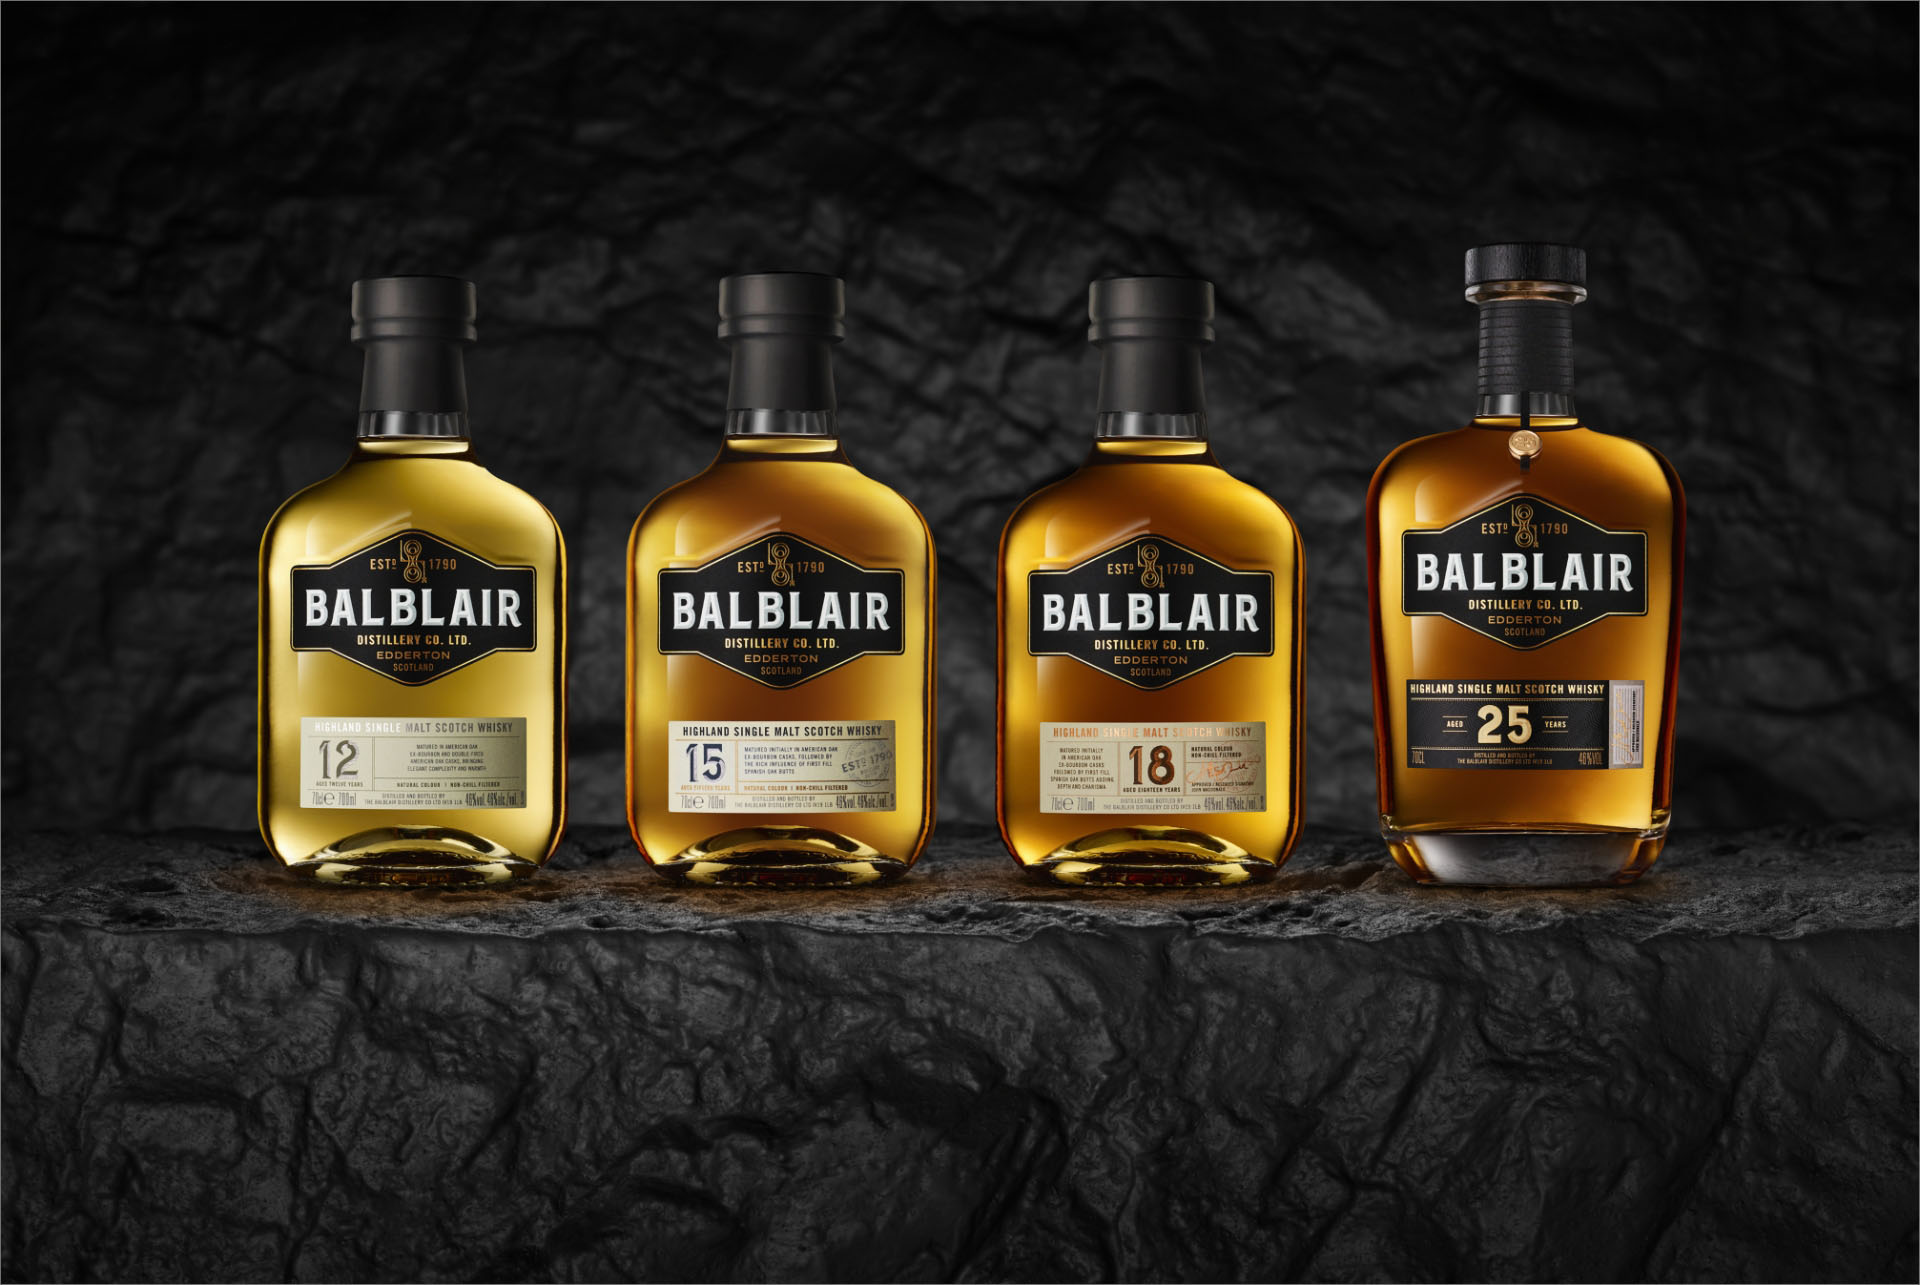 Balblair Scotch Whisky 12yo, 15yo, 18yo, 25yo